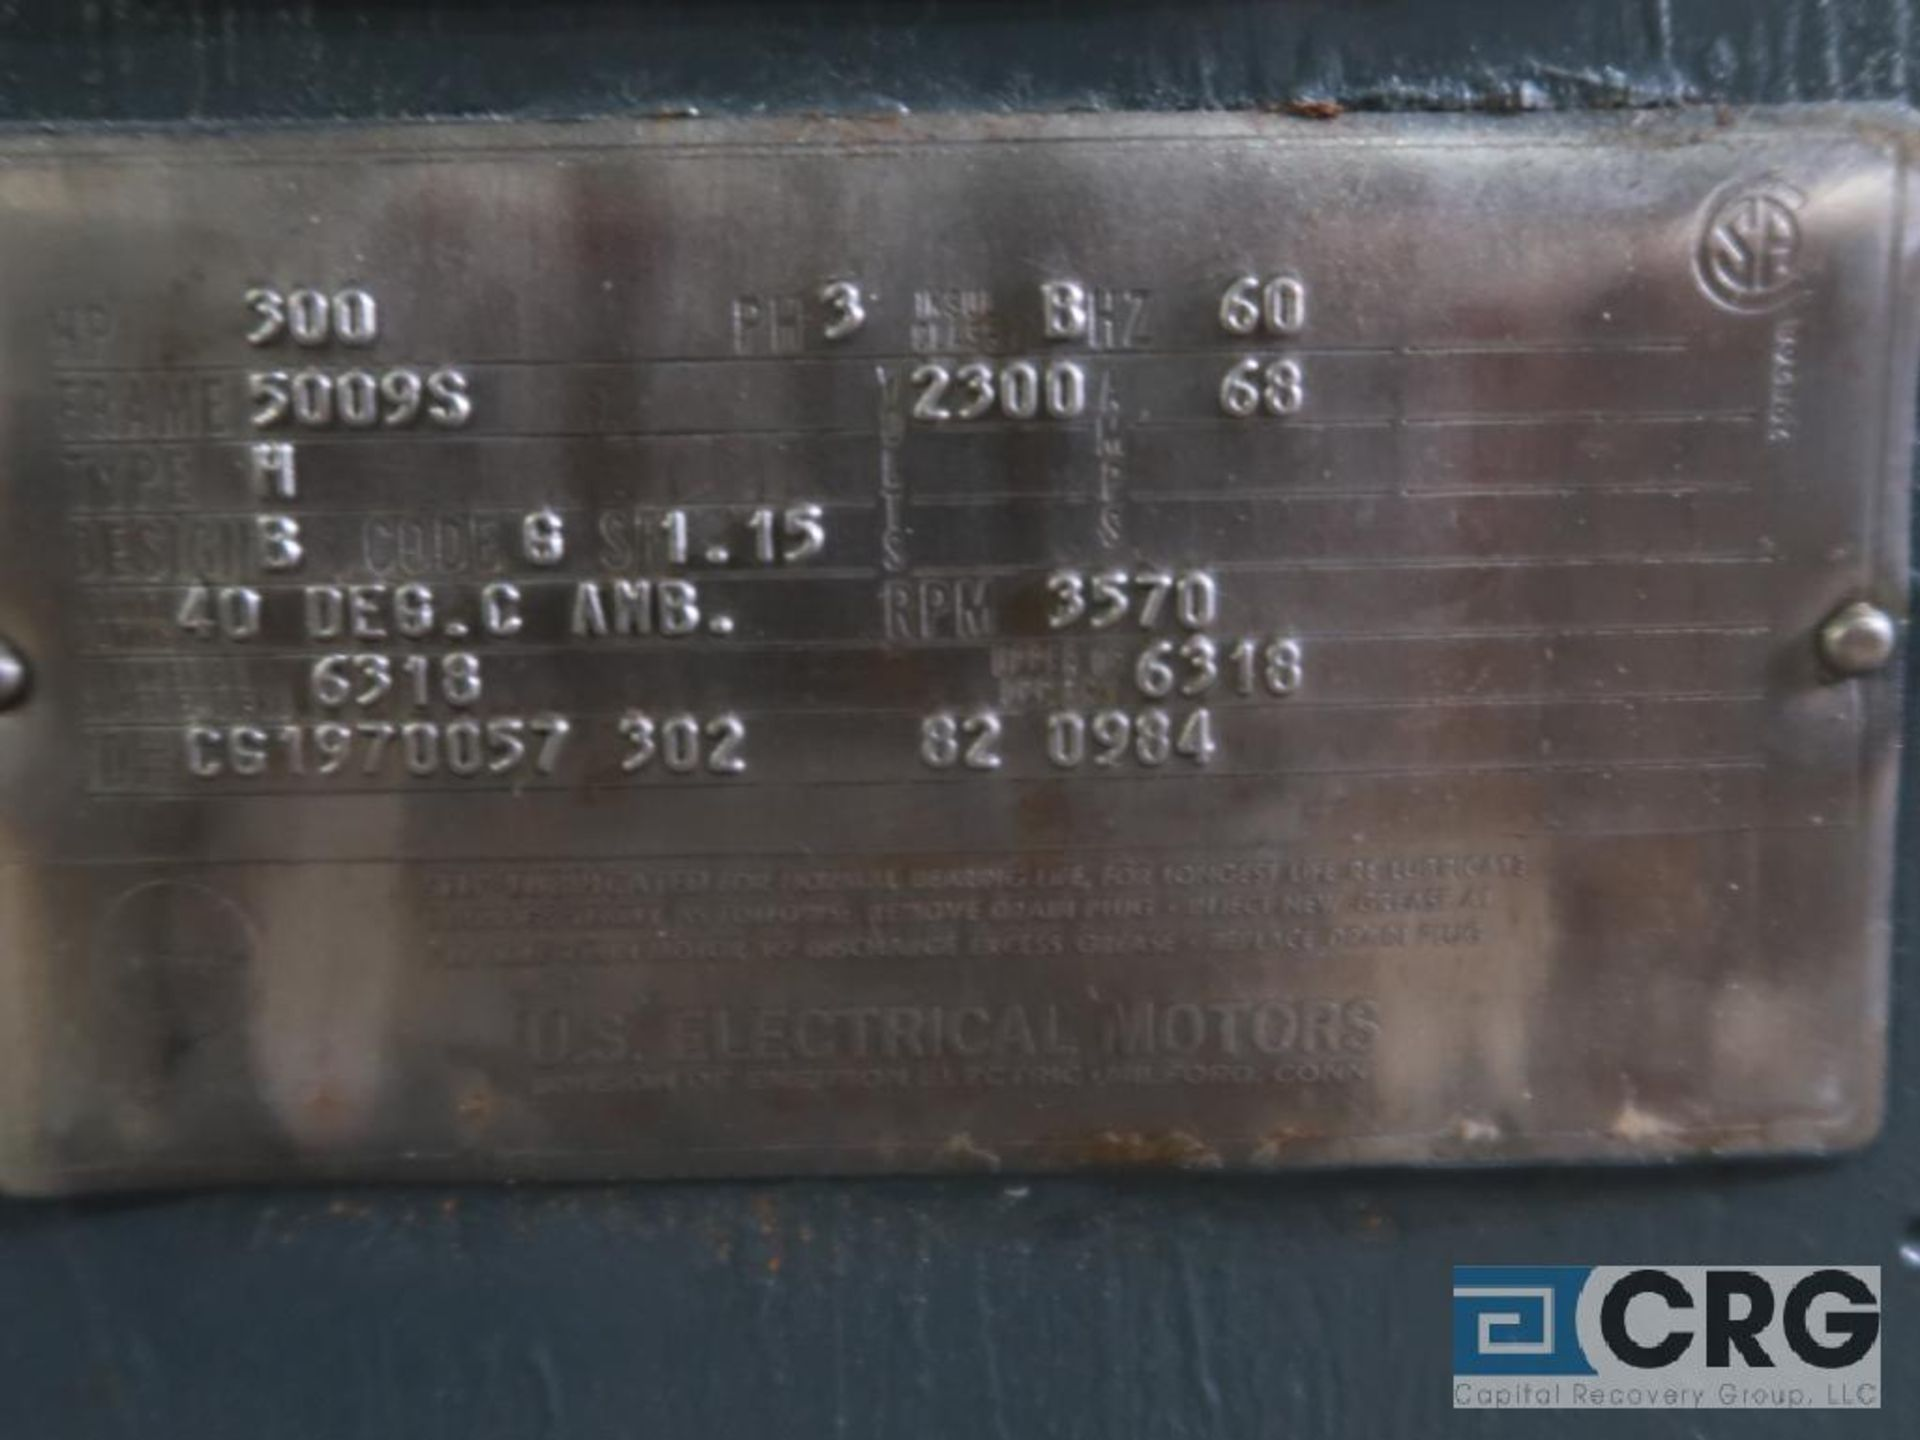 U.S. Electrical electric motor, 300 HP, 3,570 RPMs, 2,300 volt, 3 ph., 5009S frame (Finish - Image 2 of 2